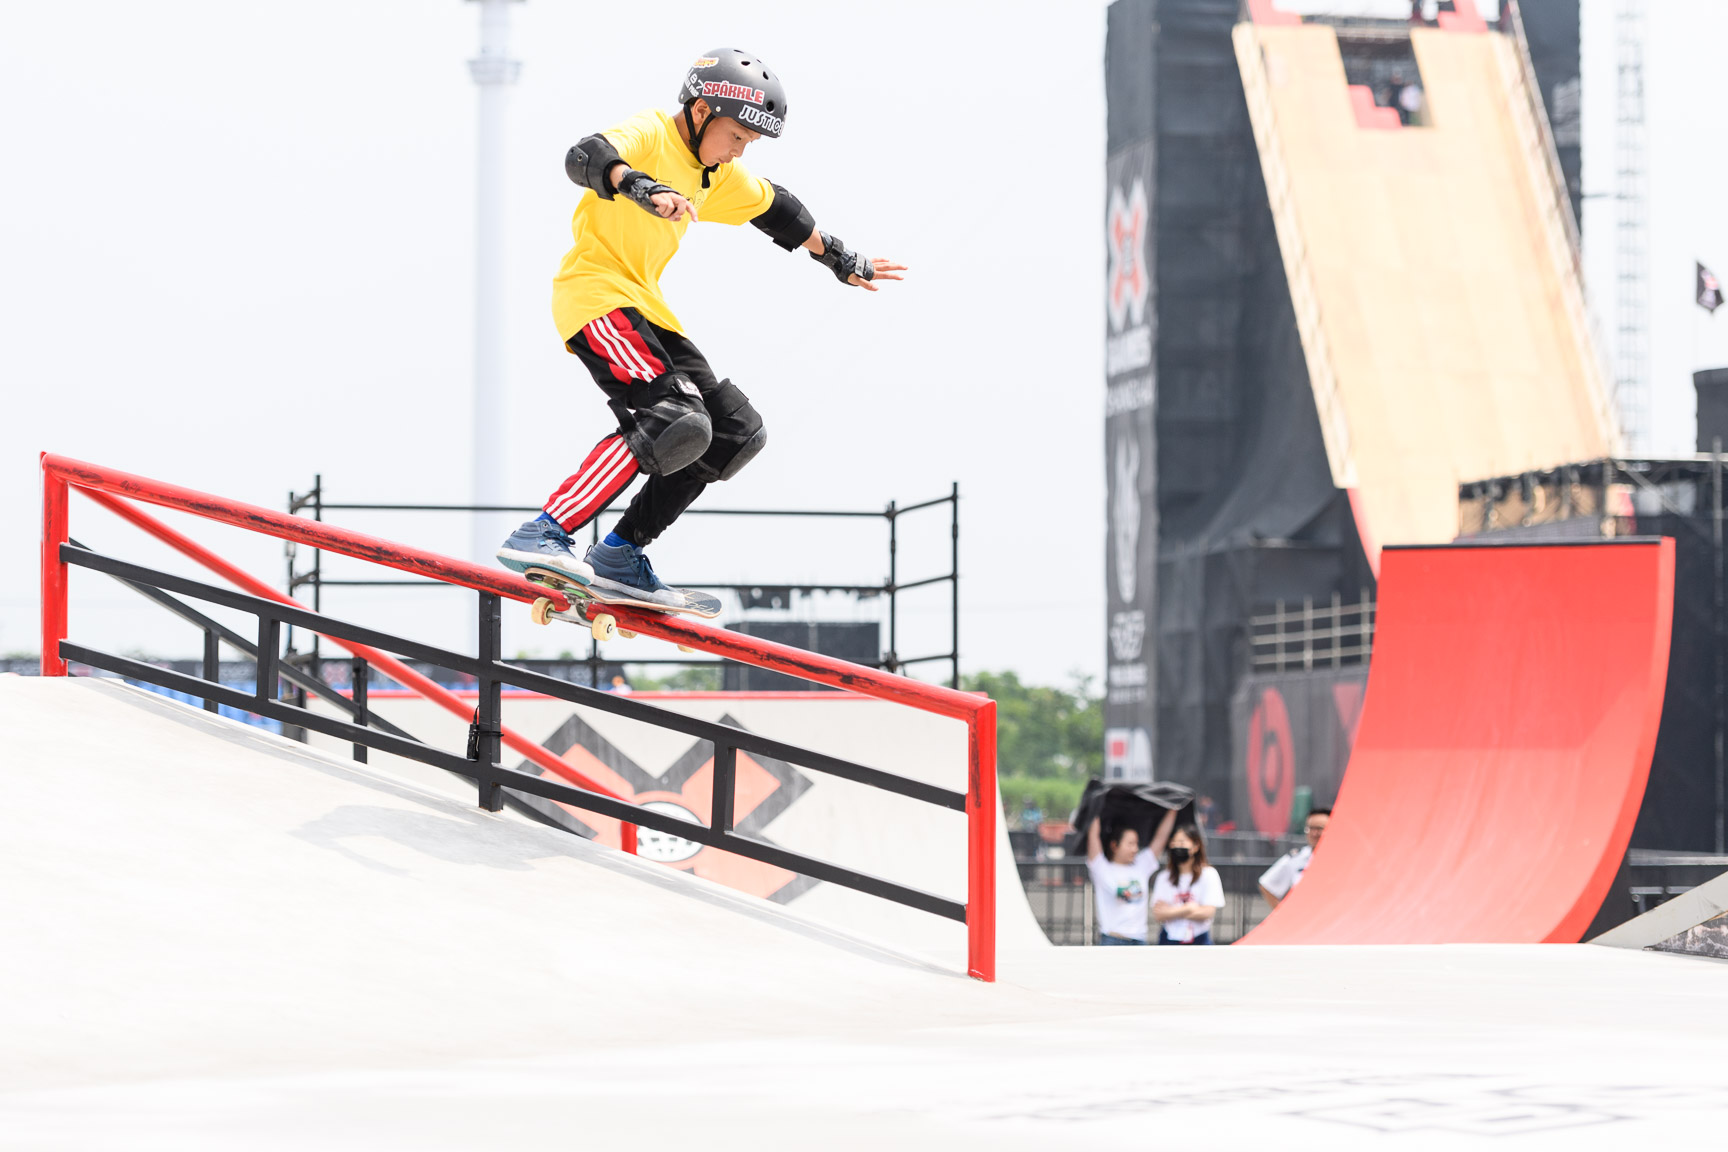 X Games Shanghai 2019: Fan Kaiwen